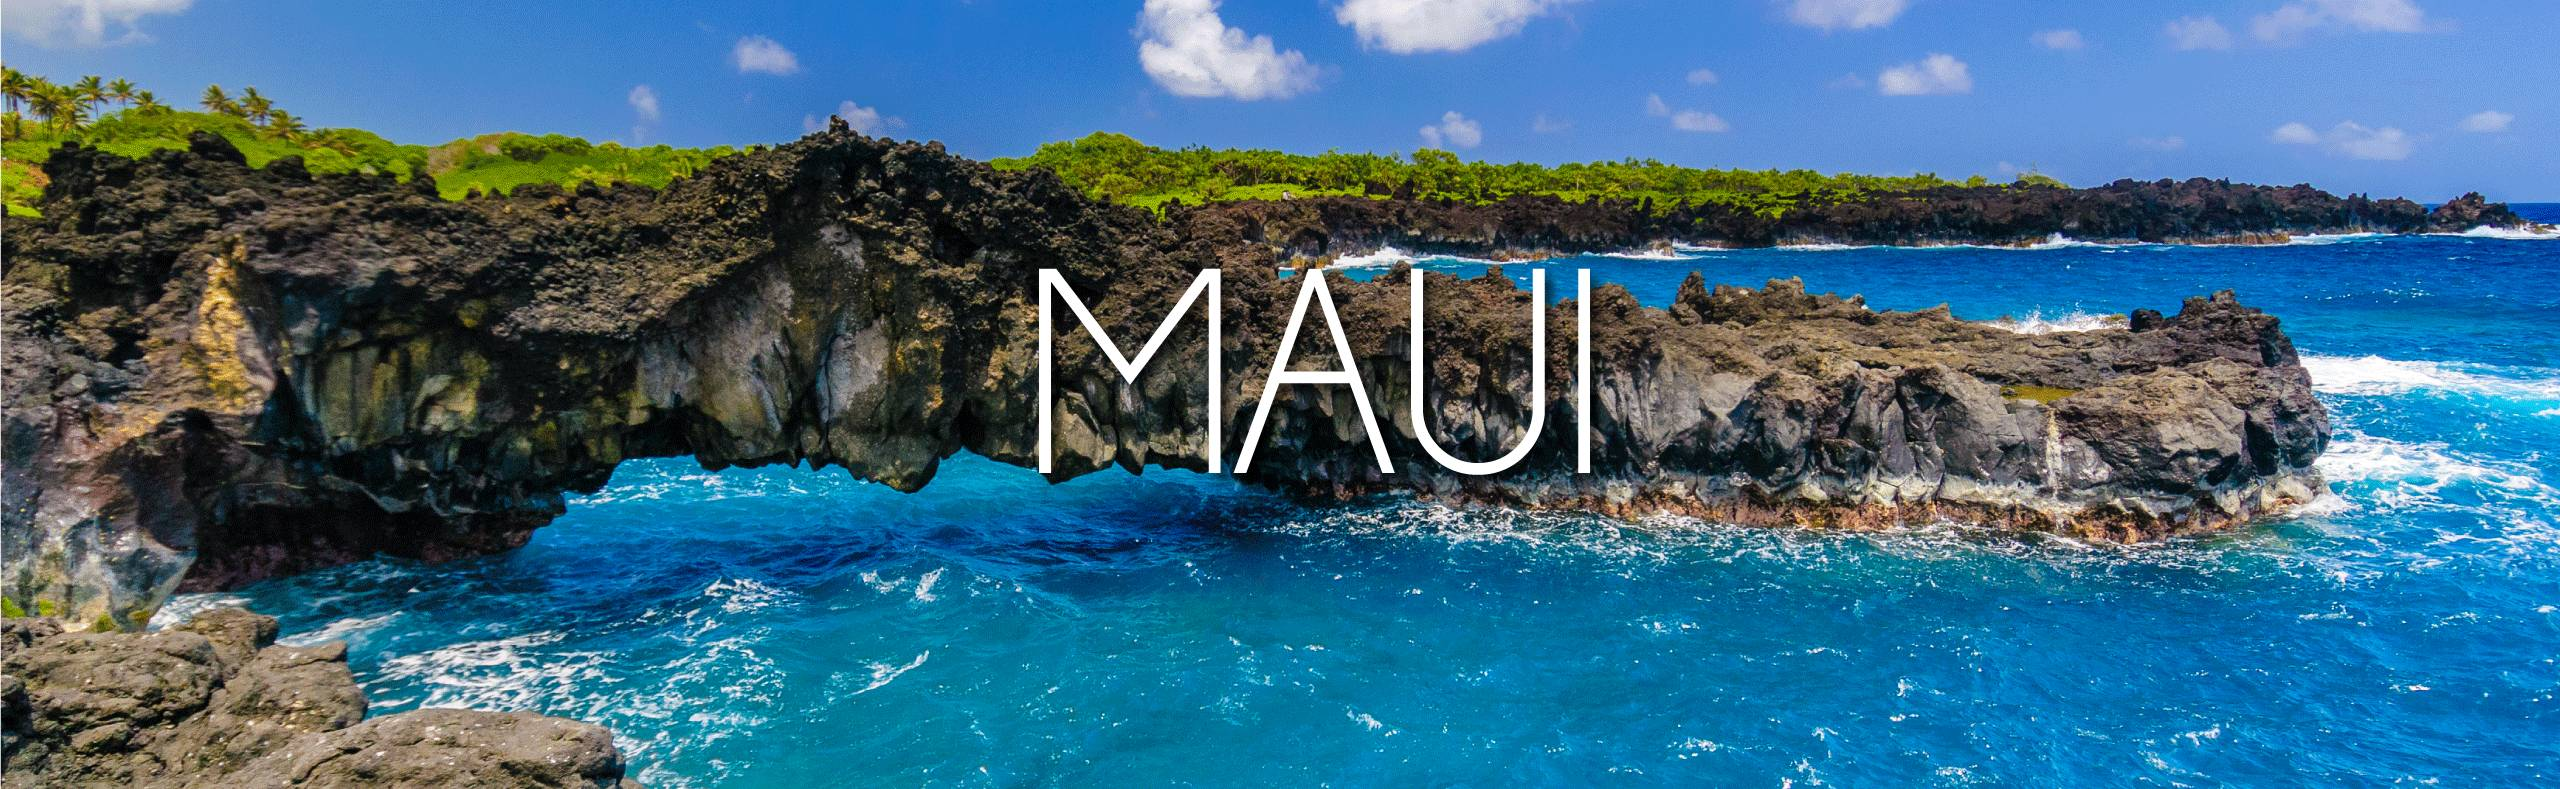 Maui has more activities and tours than found on any other island.